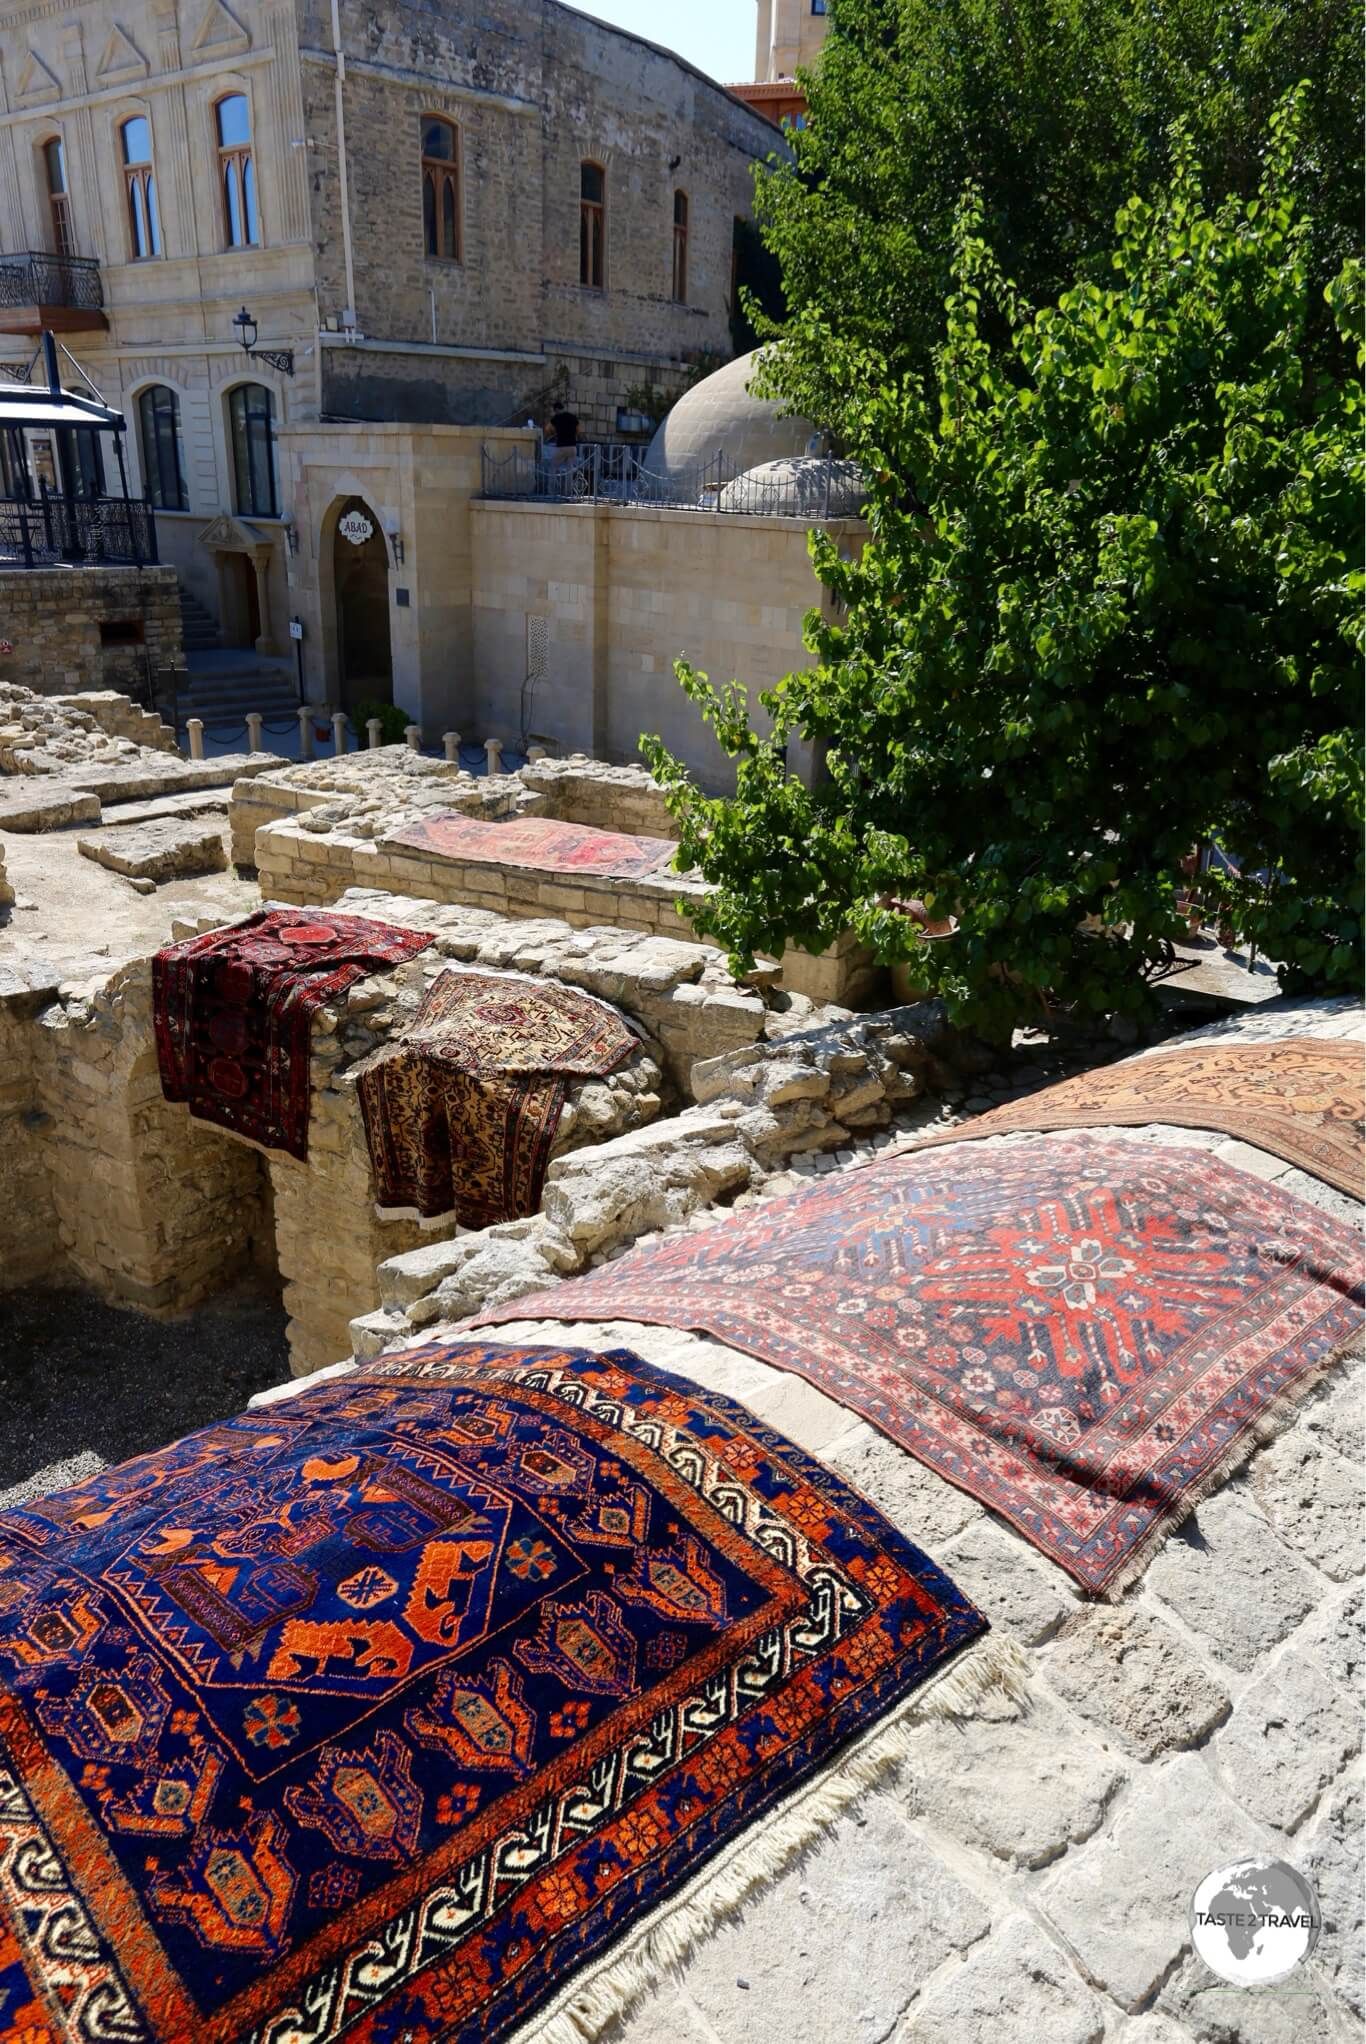 Carpets for sale in the old town of Baku.